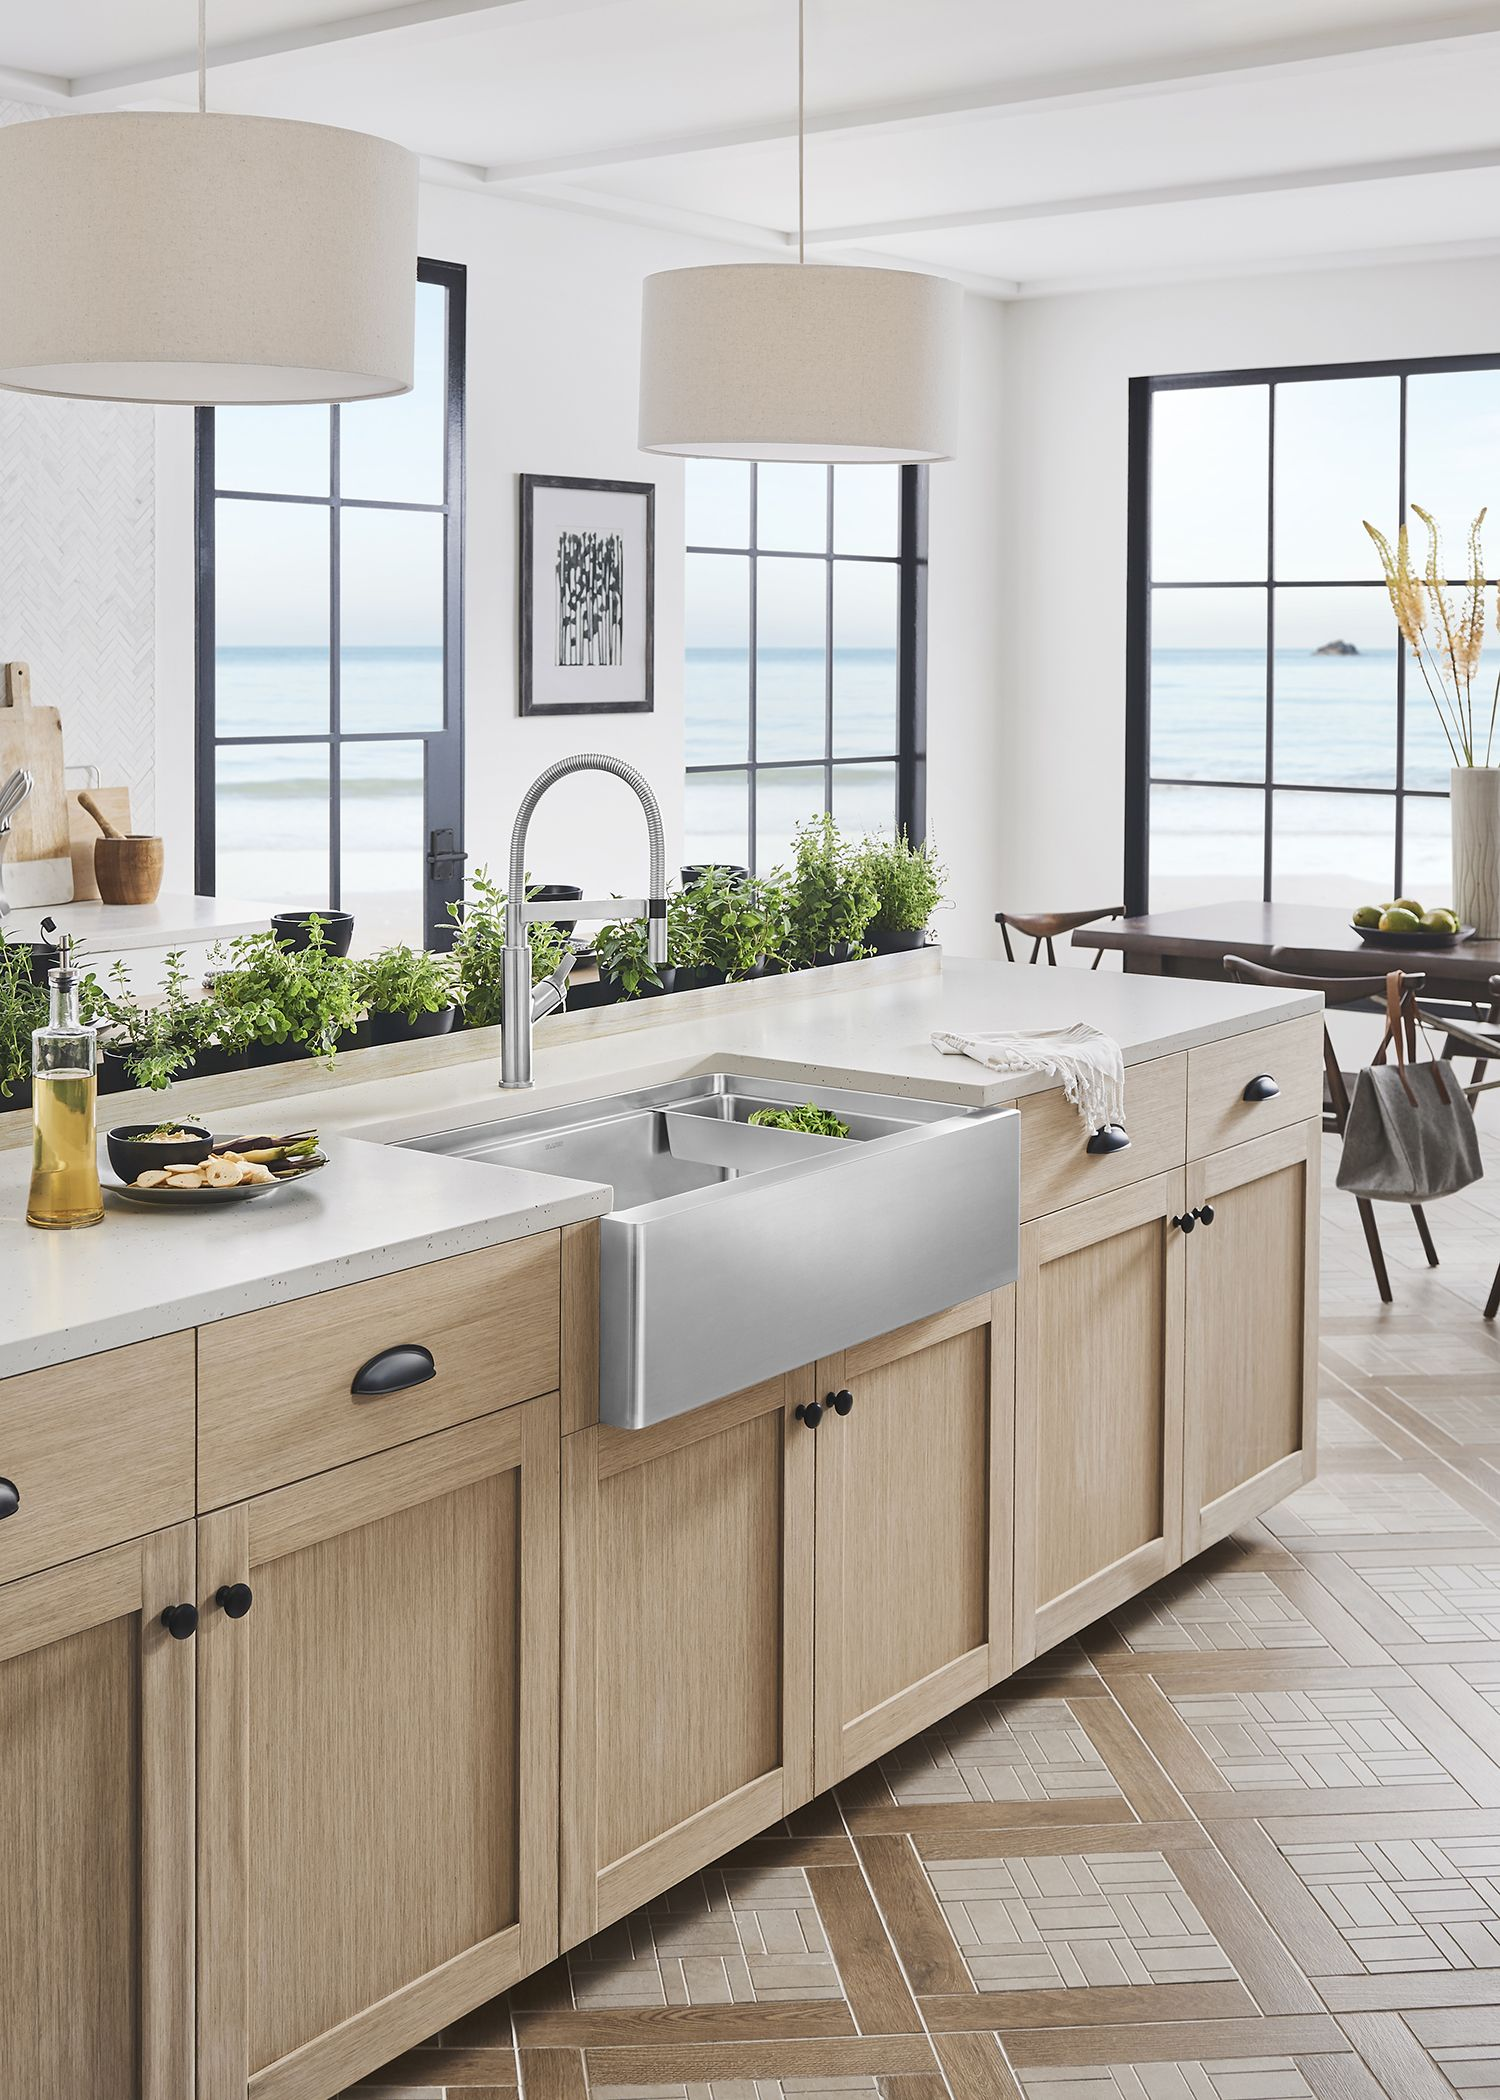 Contemporary Style For A Chic Farmhouse Kitchen Sink Look The